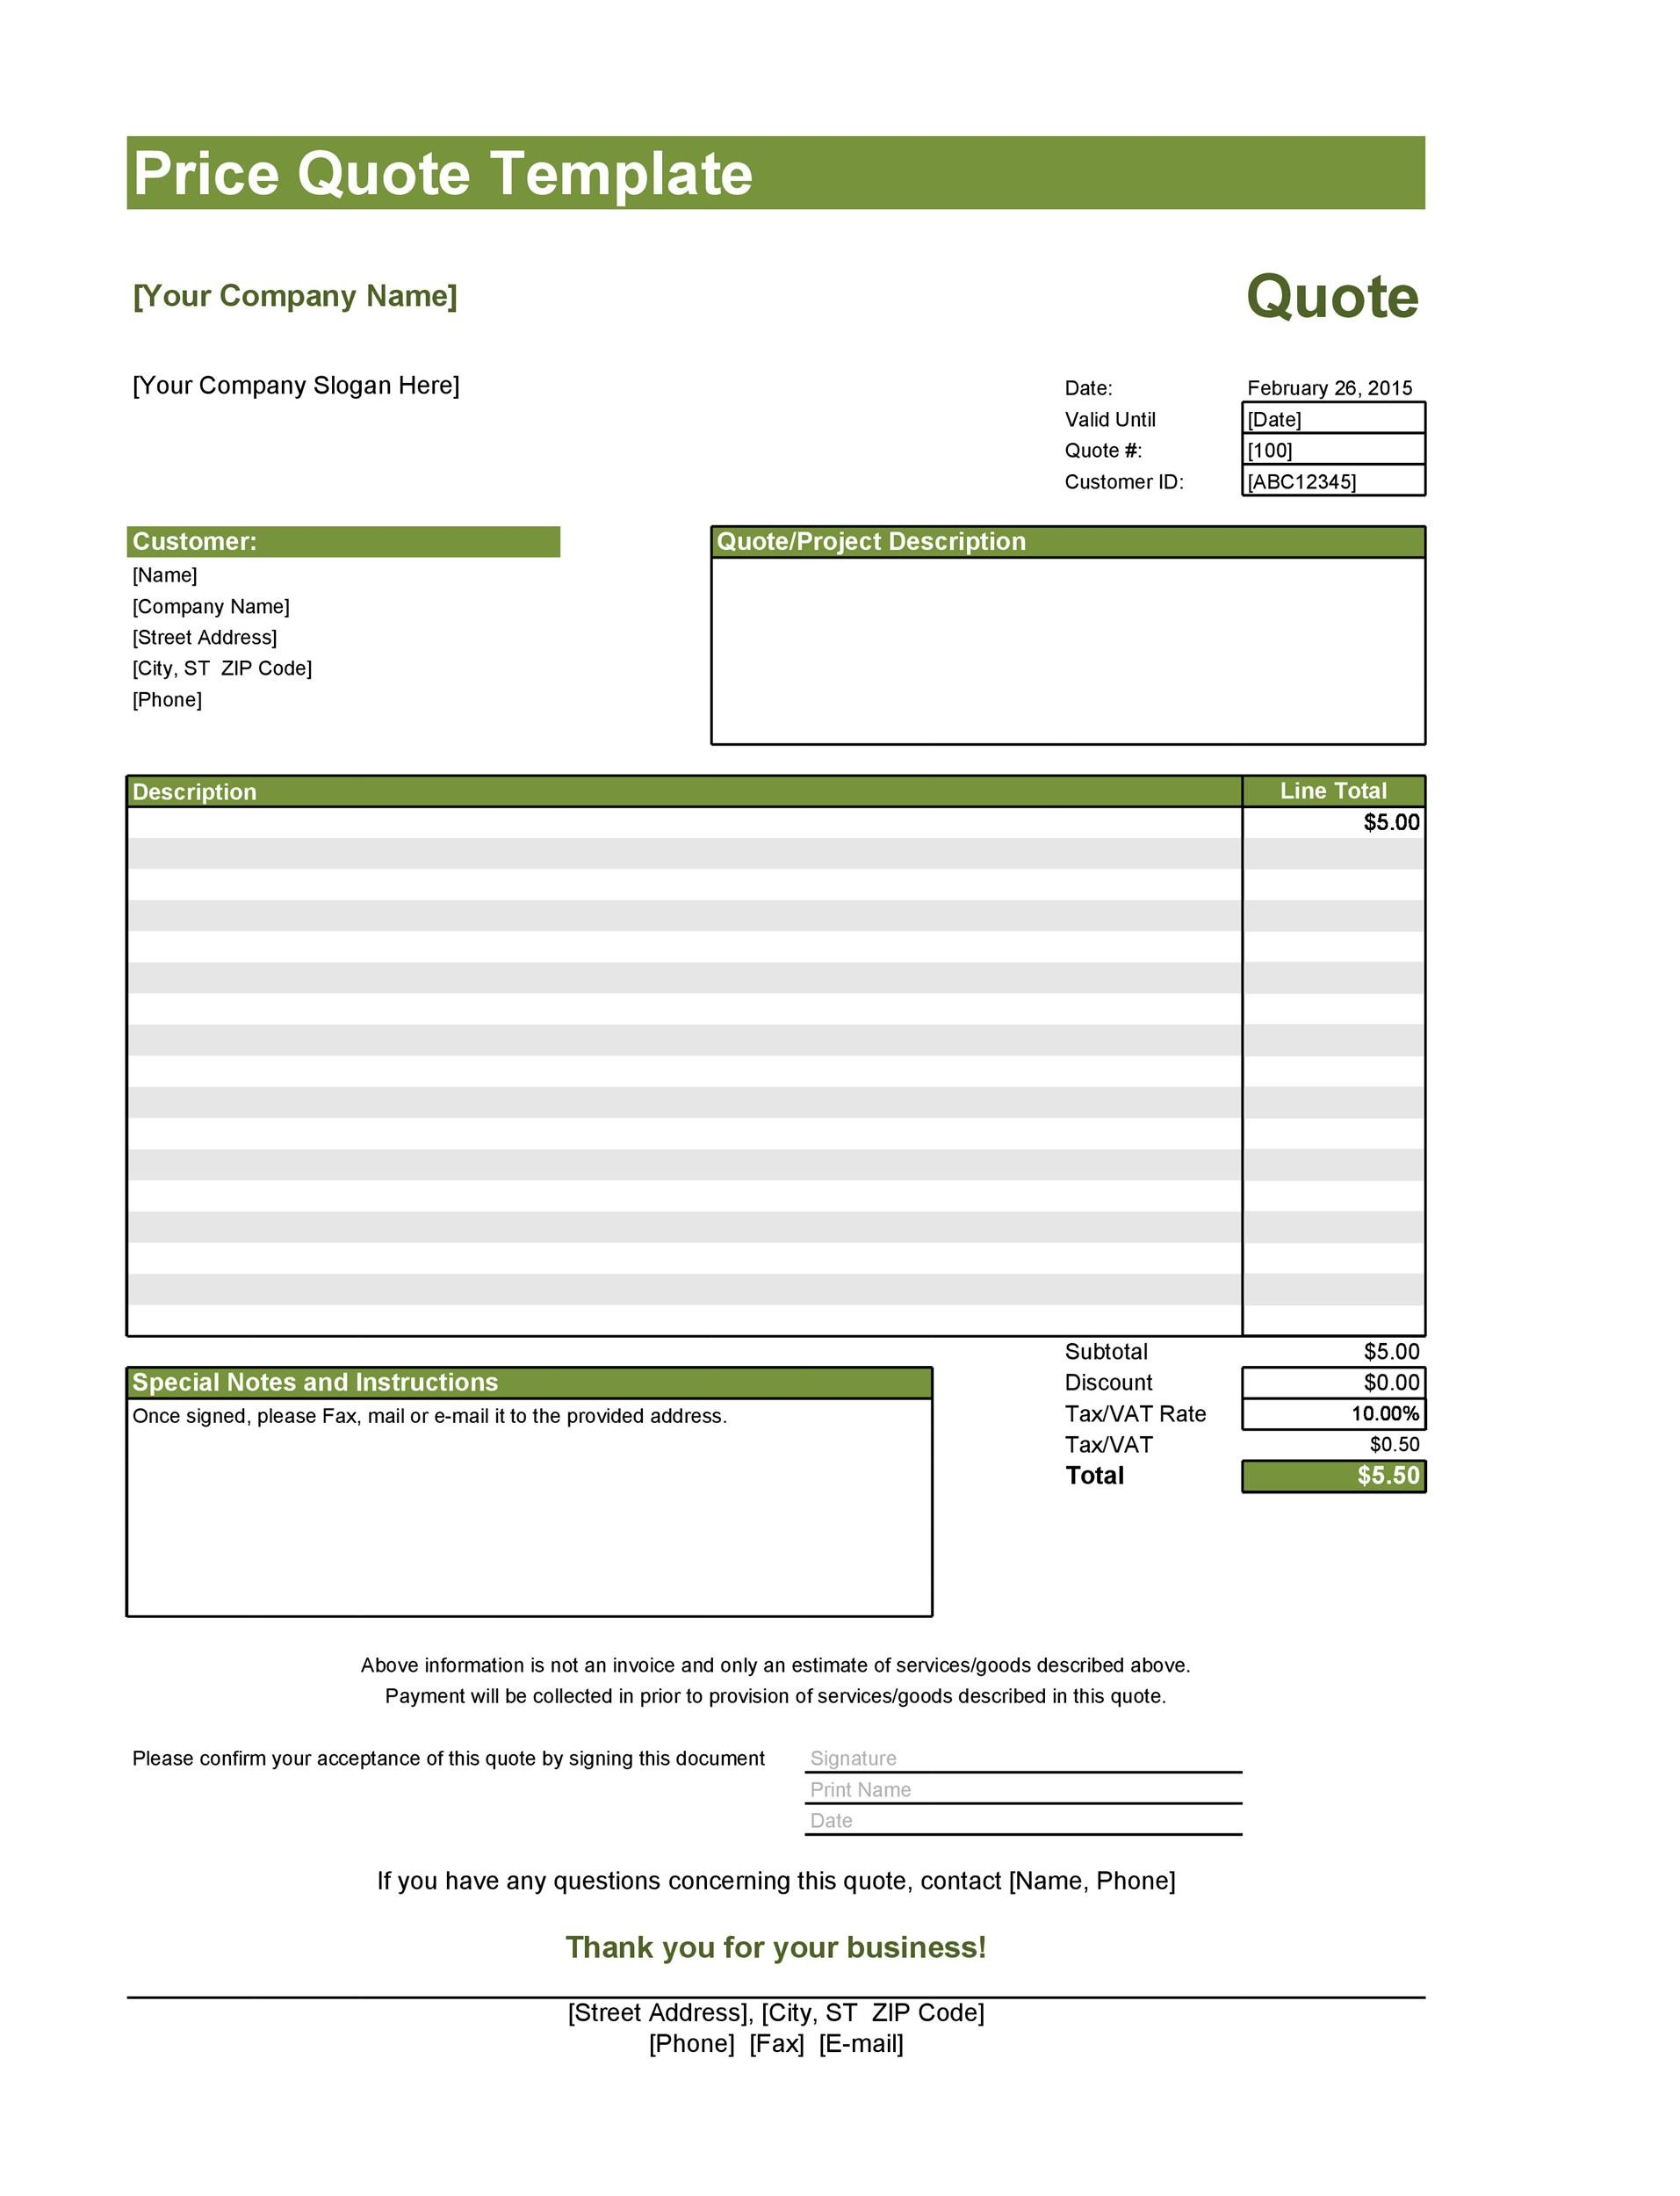 Excel Quotation Template Spreadsheets For Small Business from templatelab.com